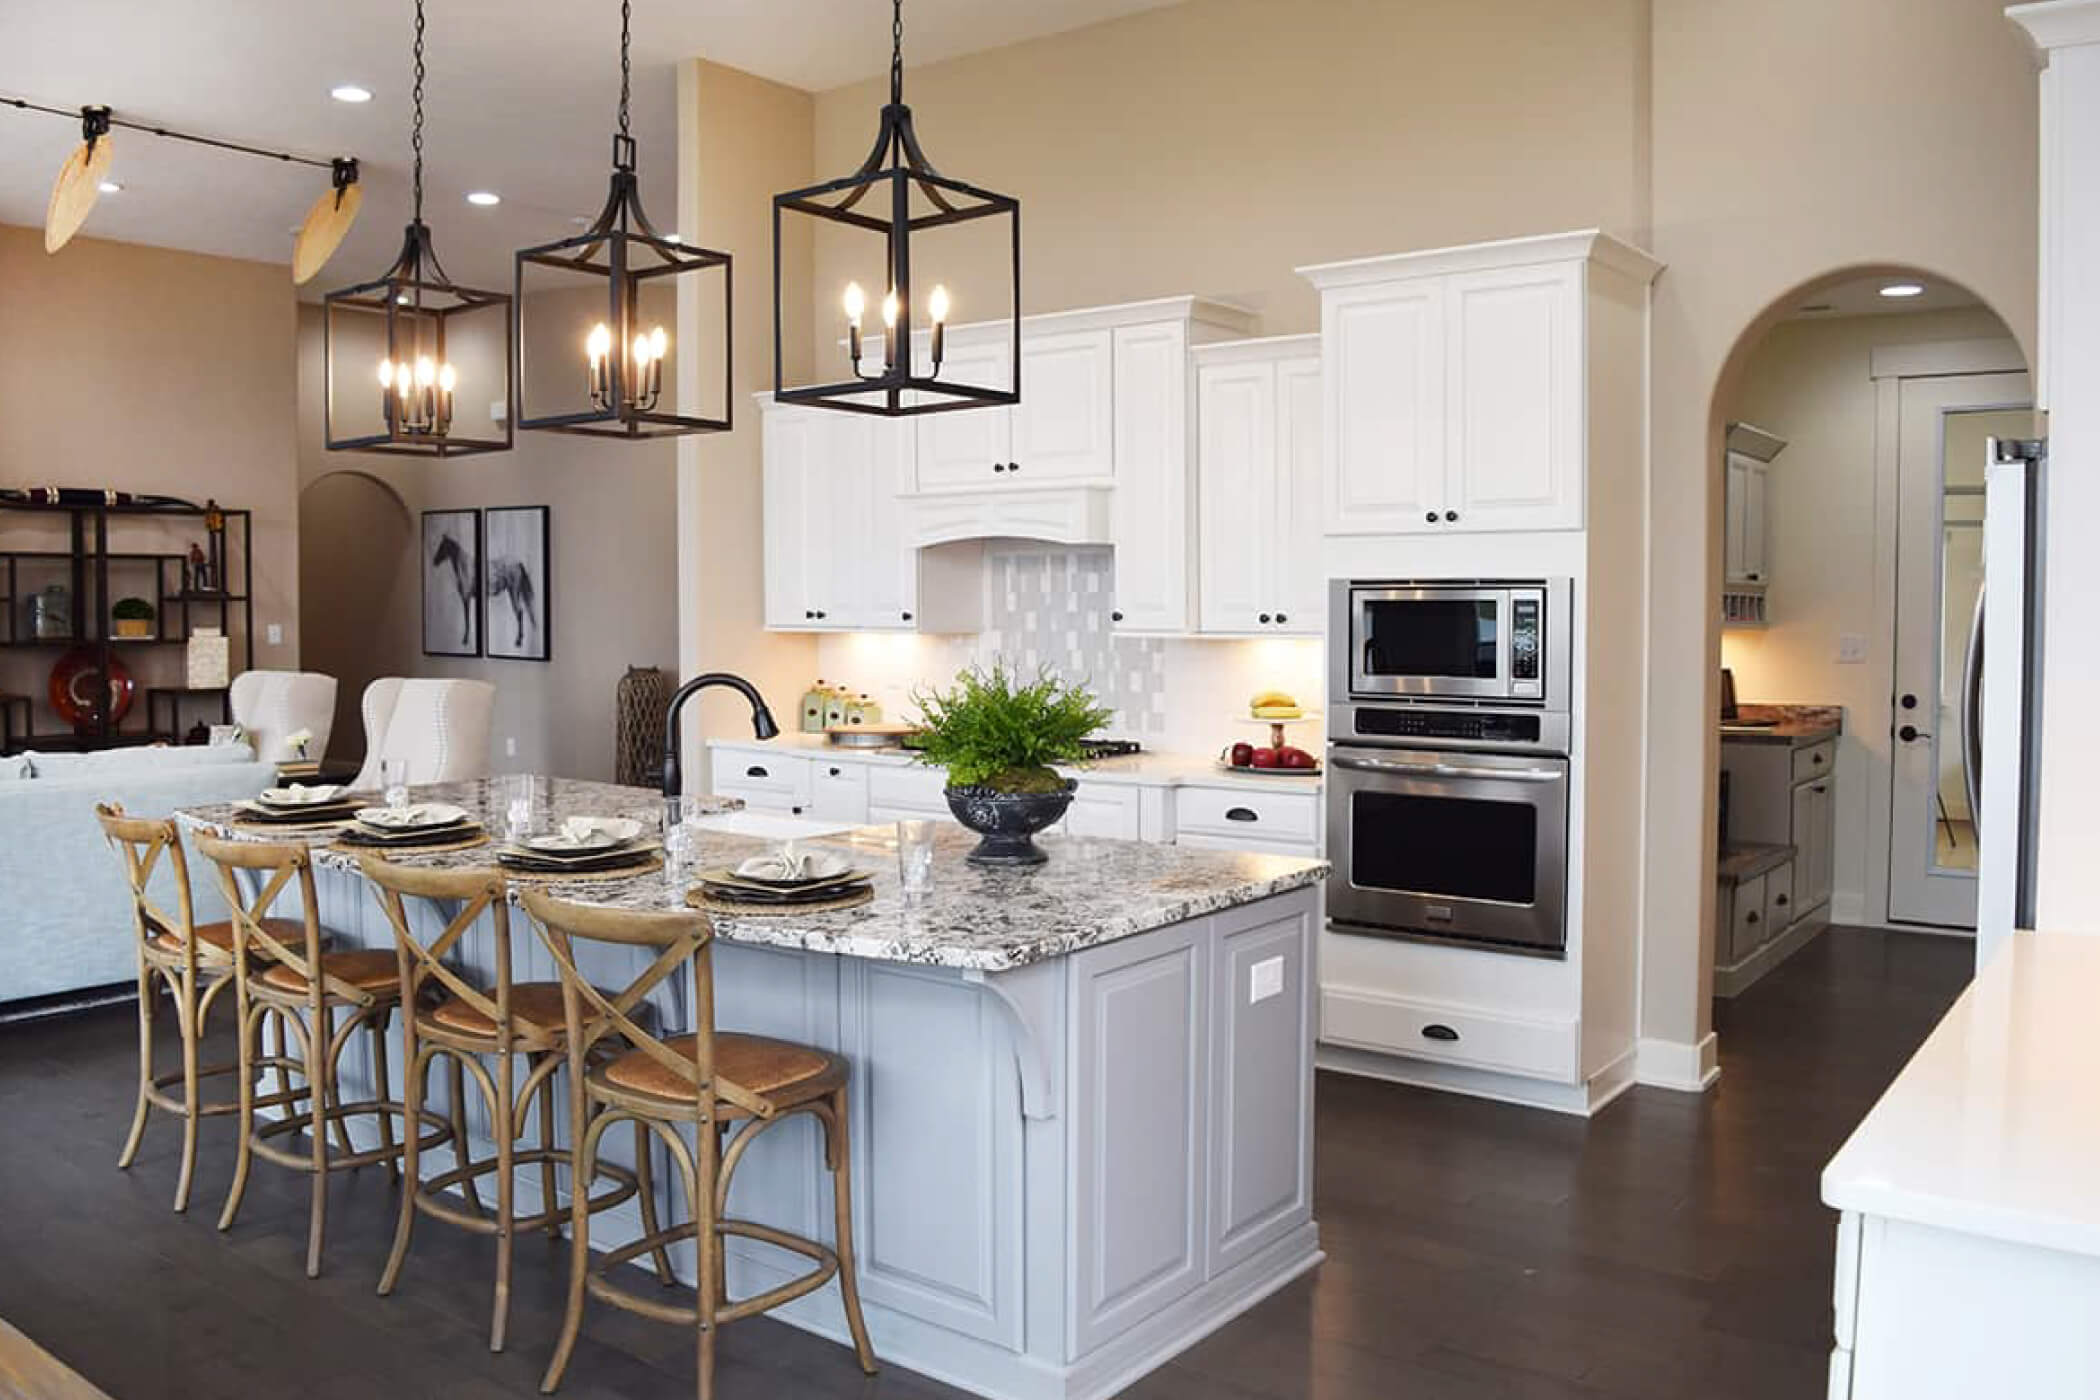 White kitchen cabines, granite island, breakfast bar, and gas stove in the kitchen of one of Waterfront of West Clay's custom homes